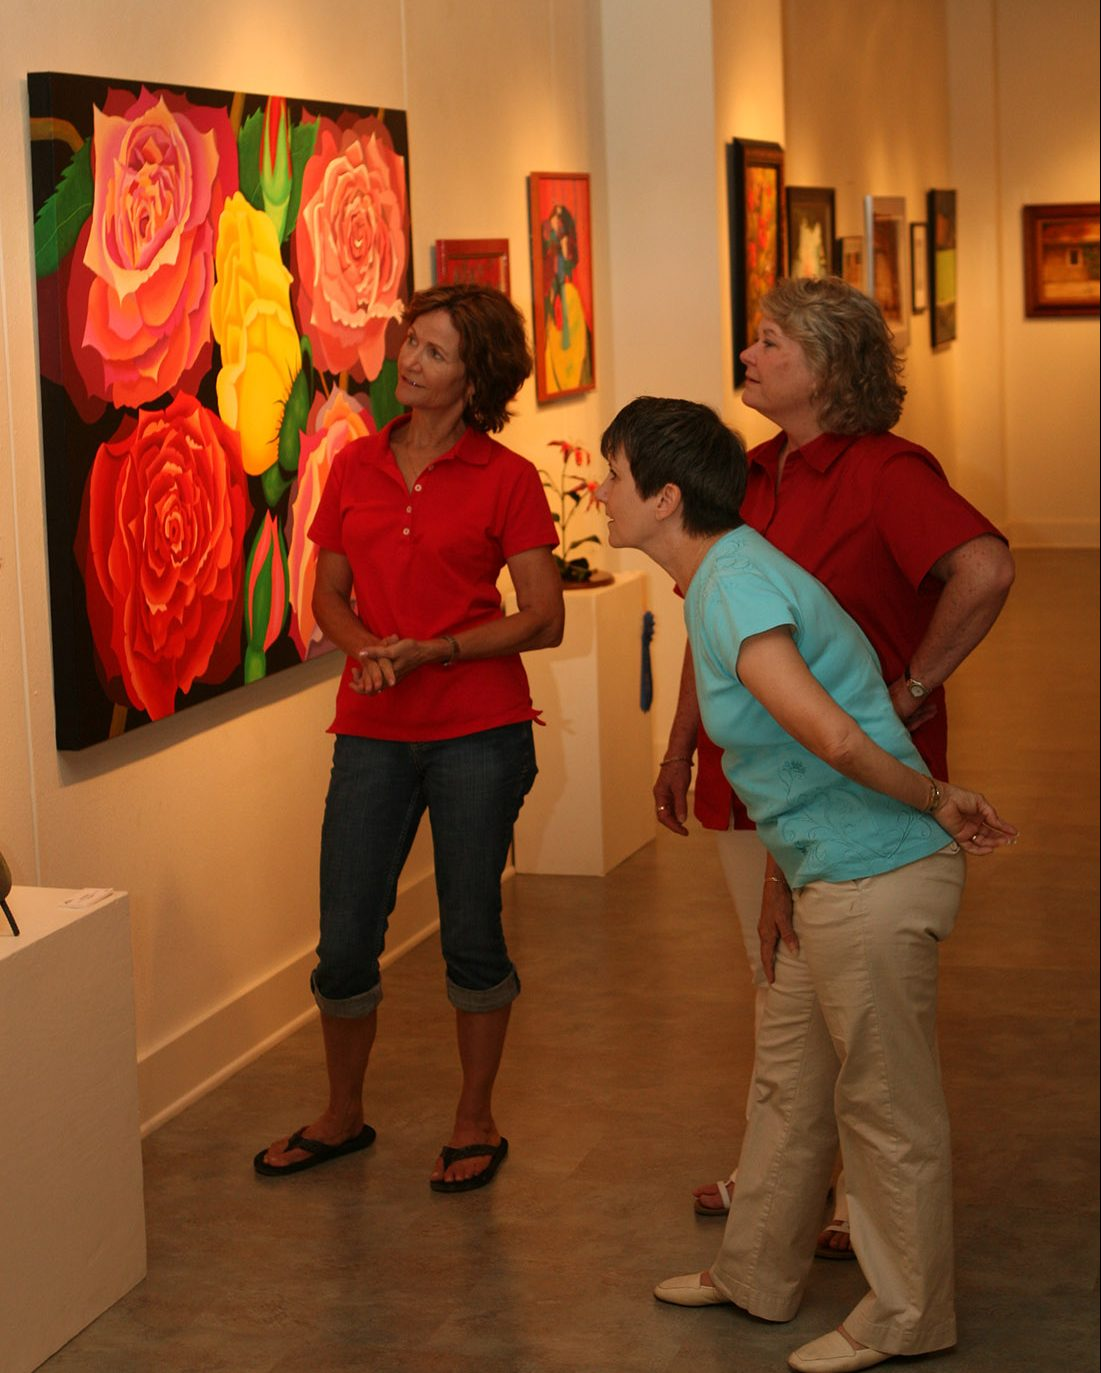 Women admire paintings on a wall.